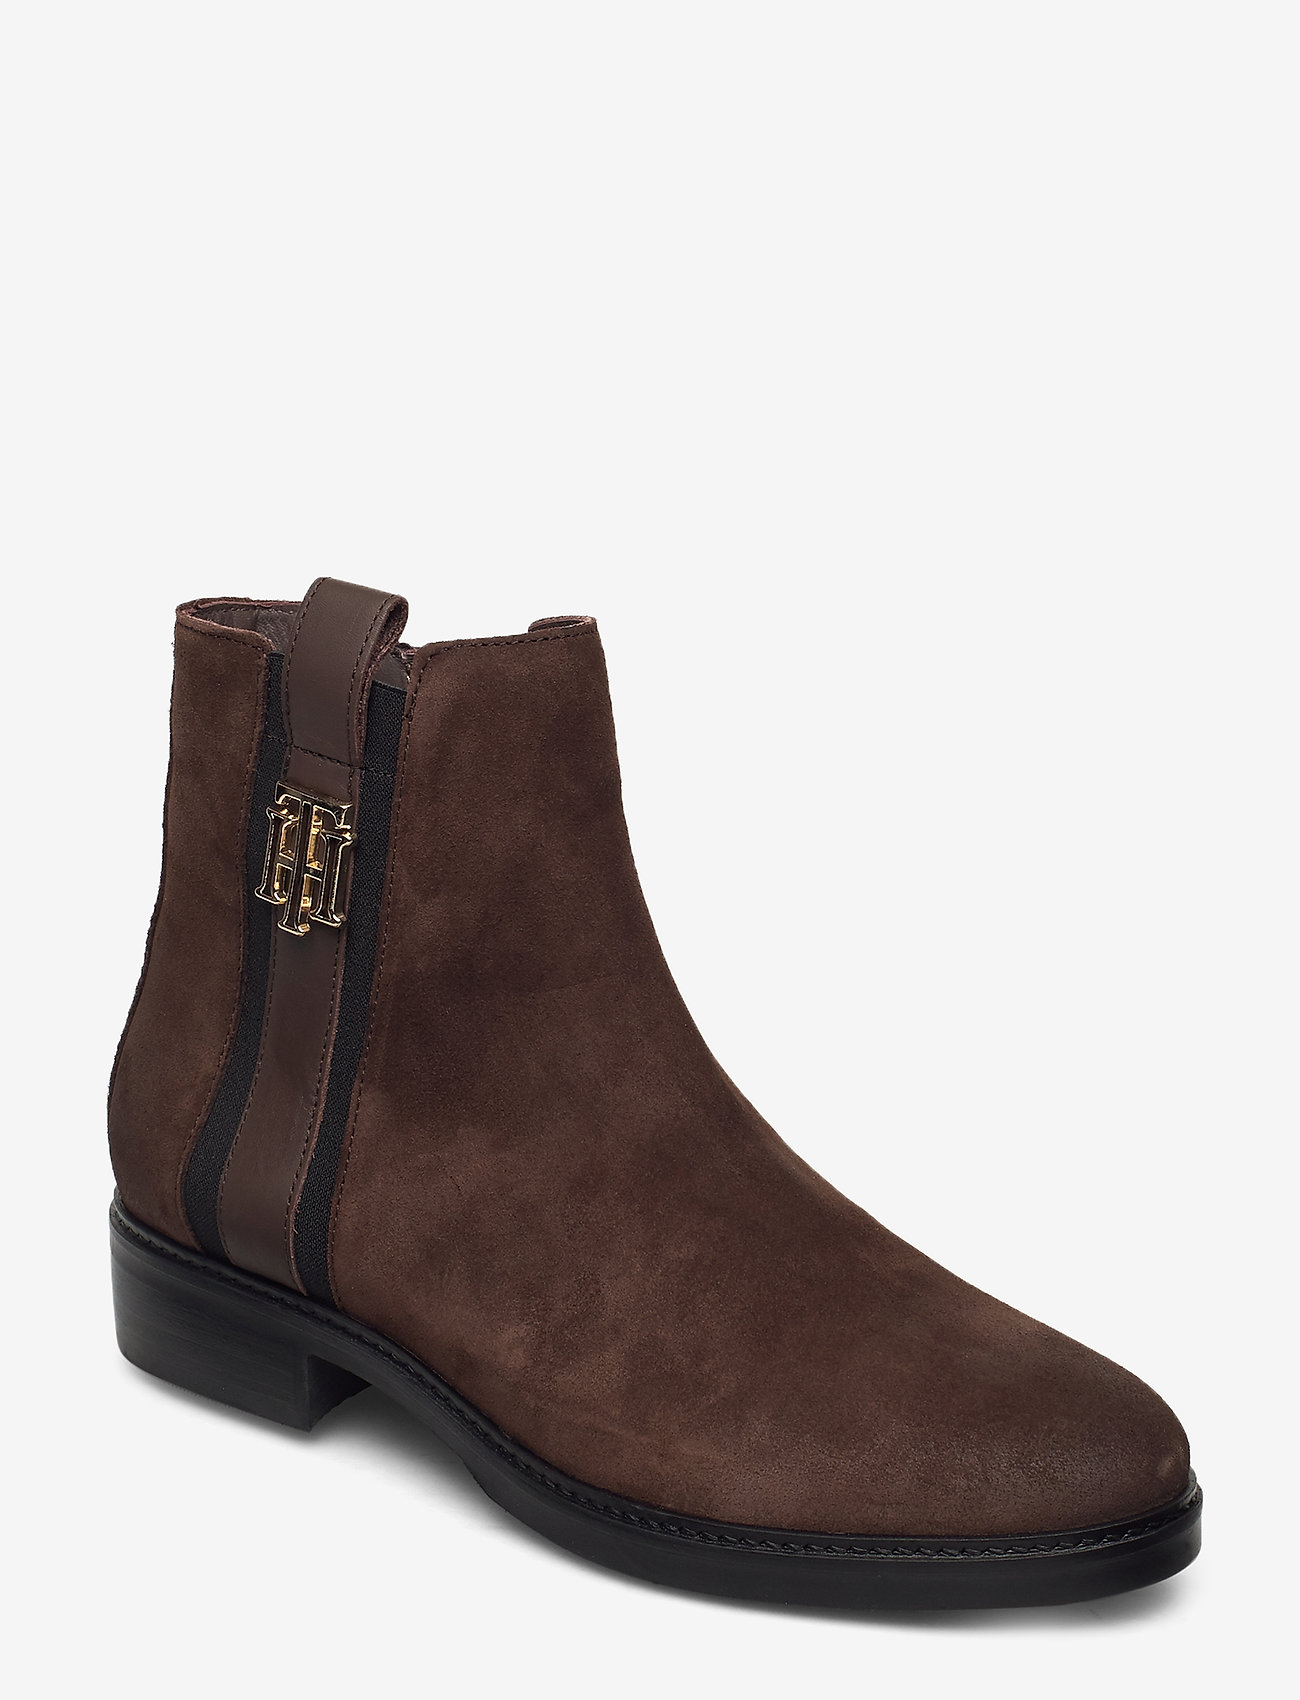 Tommy Hilfiger - TH INTERLOCK SUEDE FLAT BOOT - cocoa - 0